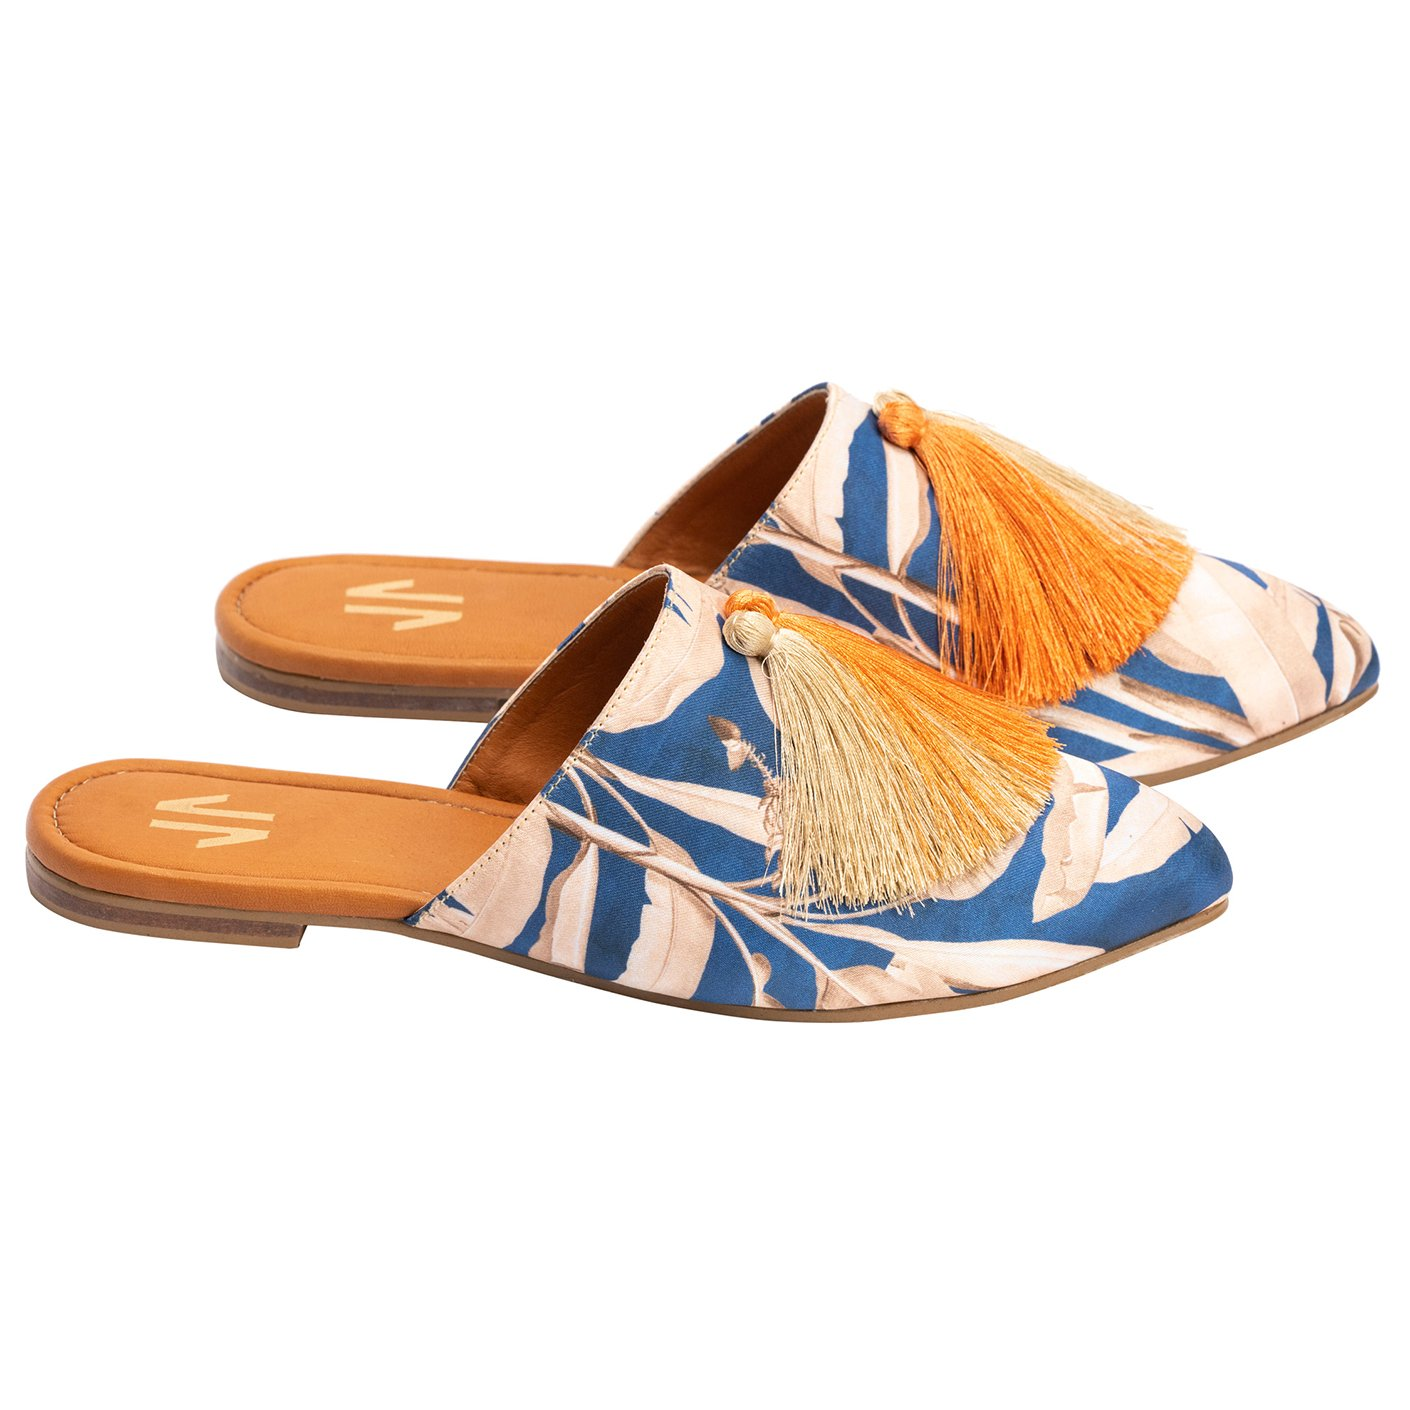 Silvia Cobos MILONGA Flat Mules with Tassels in Blue